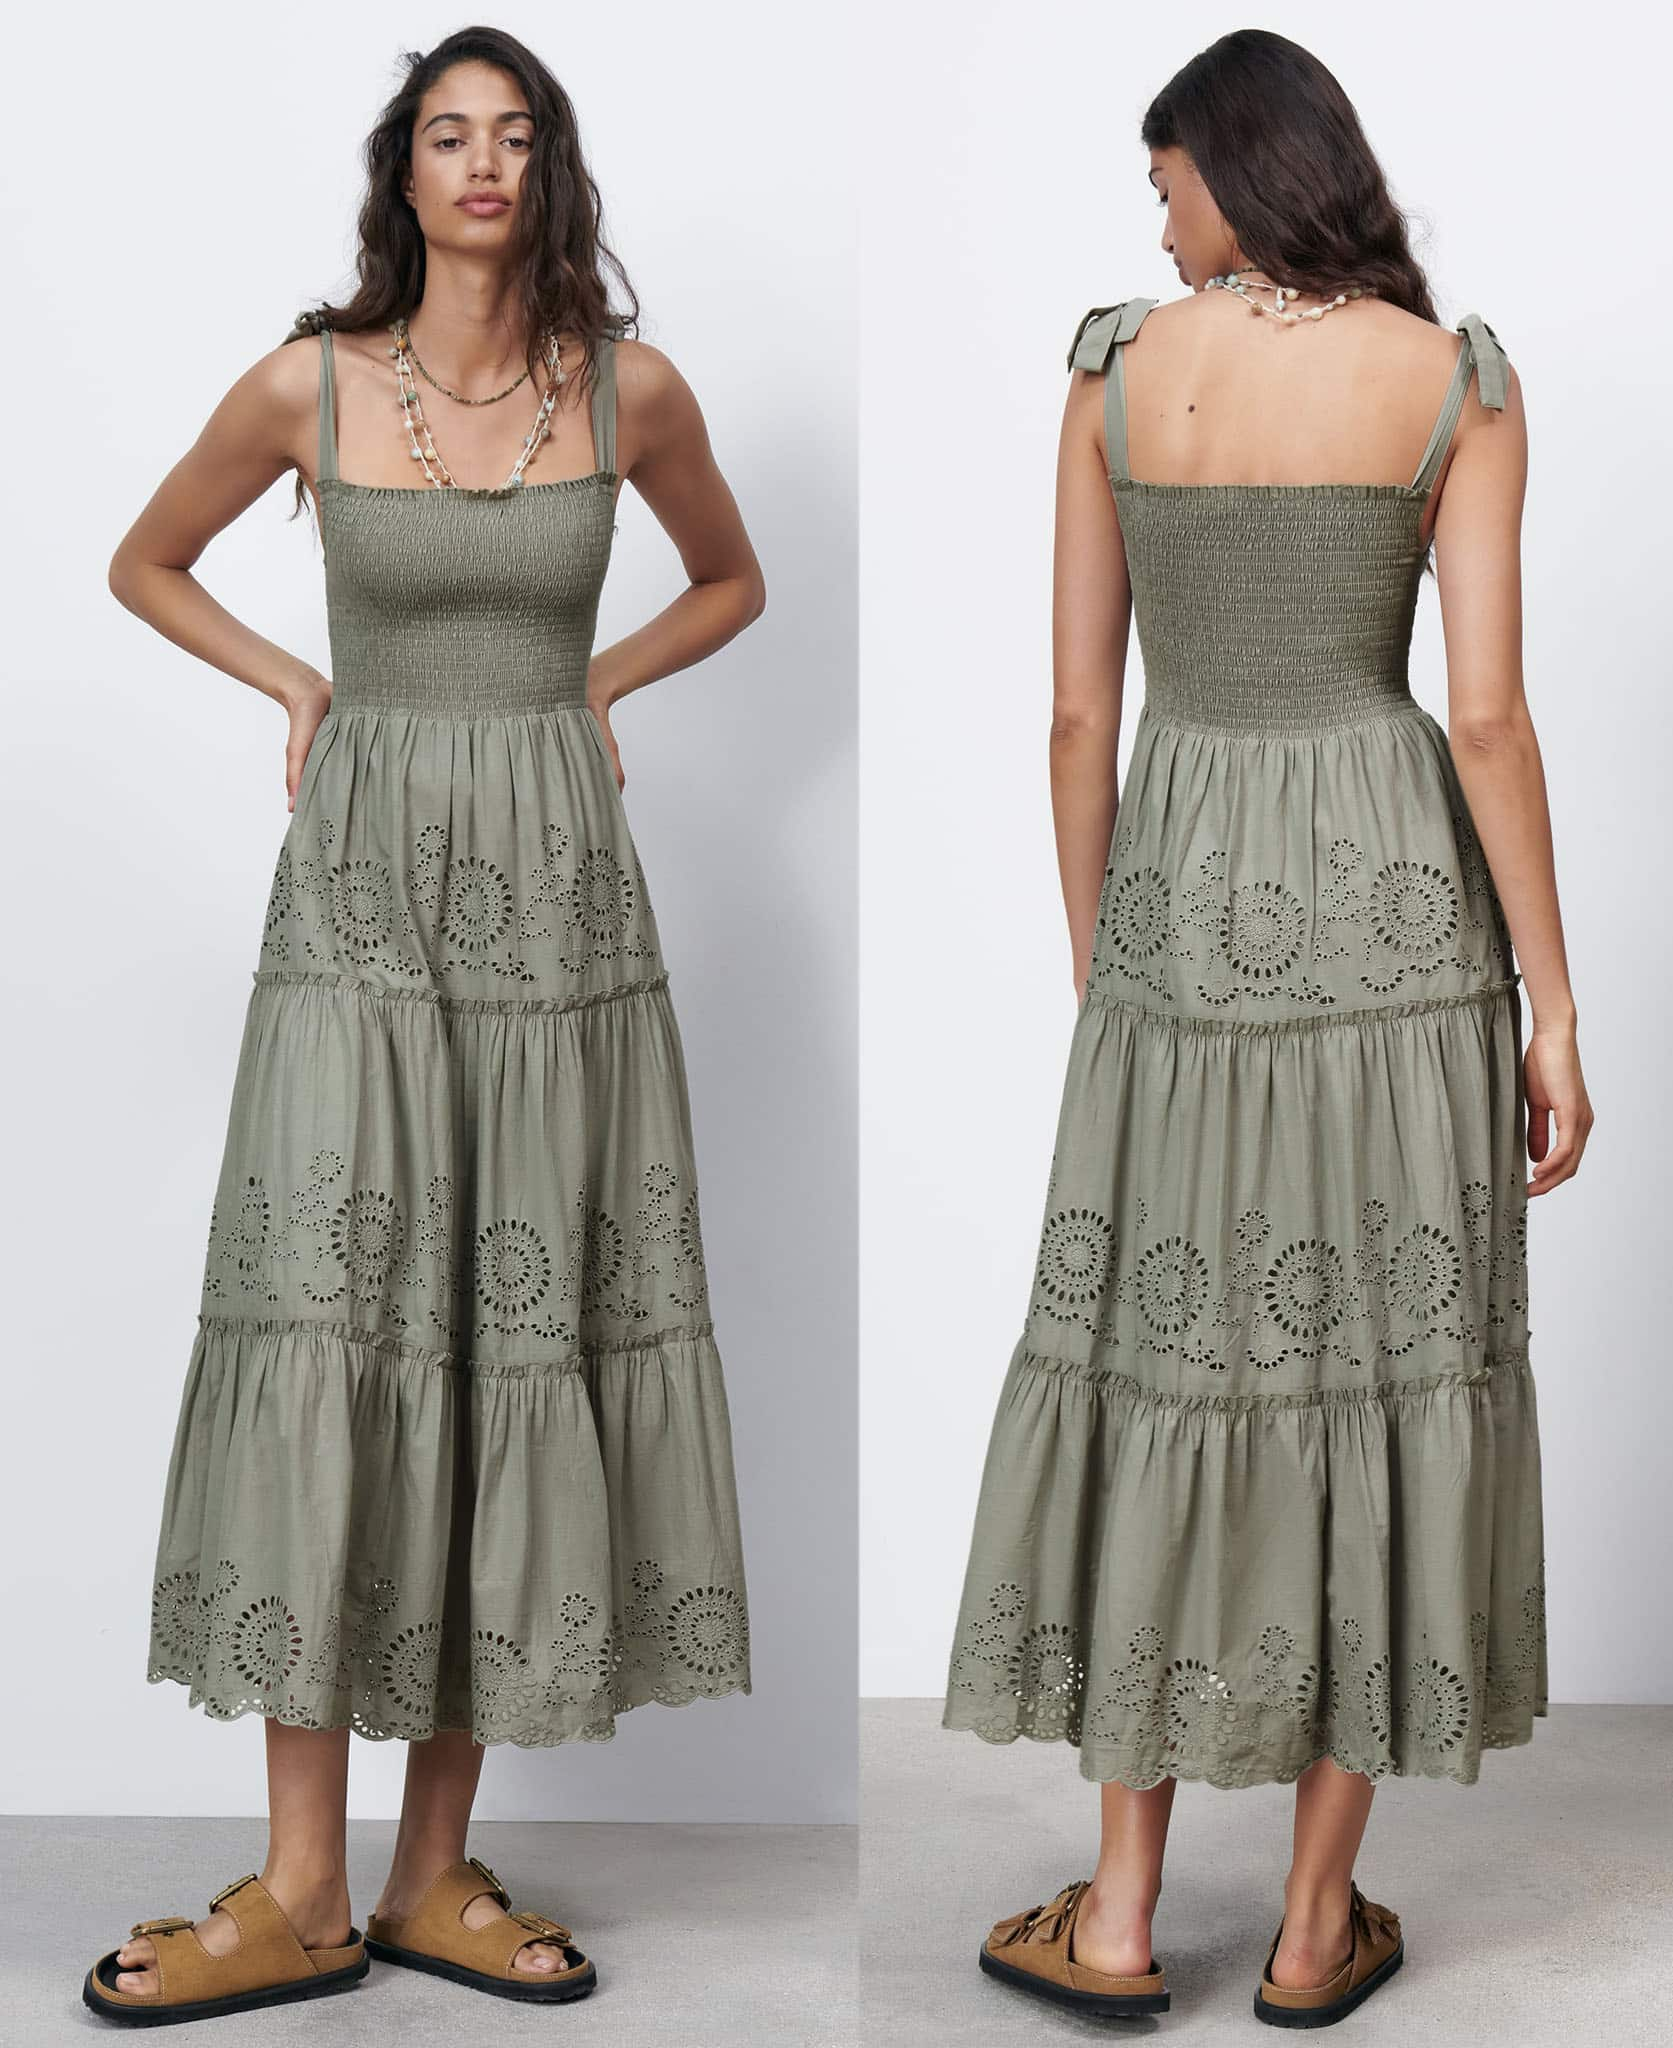 Whether for vacation, afternoon tea or wine with friends, Zara's openwork embroidered dress will keep you looking chic and fresh